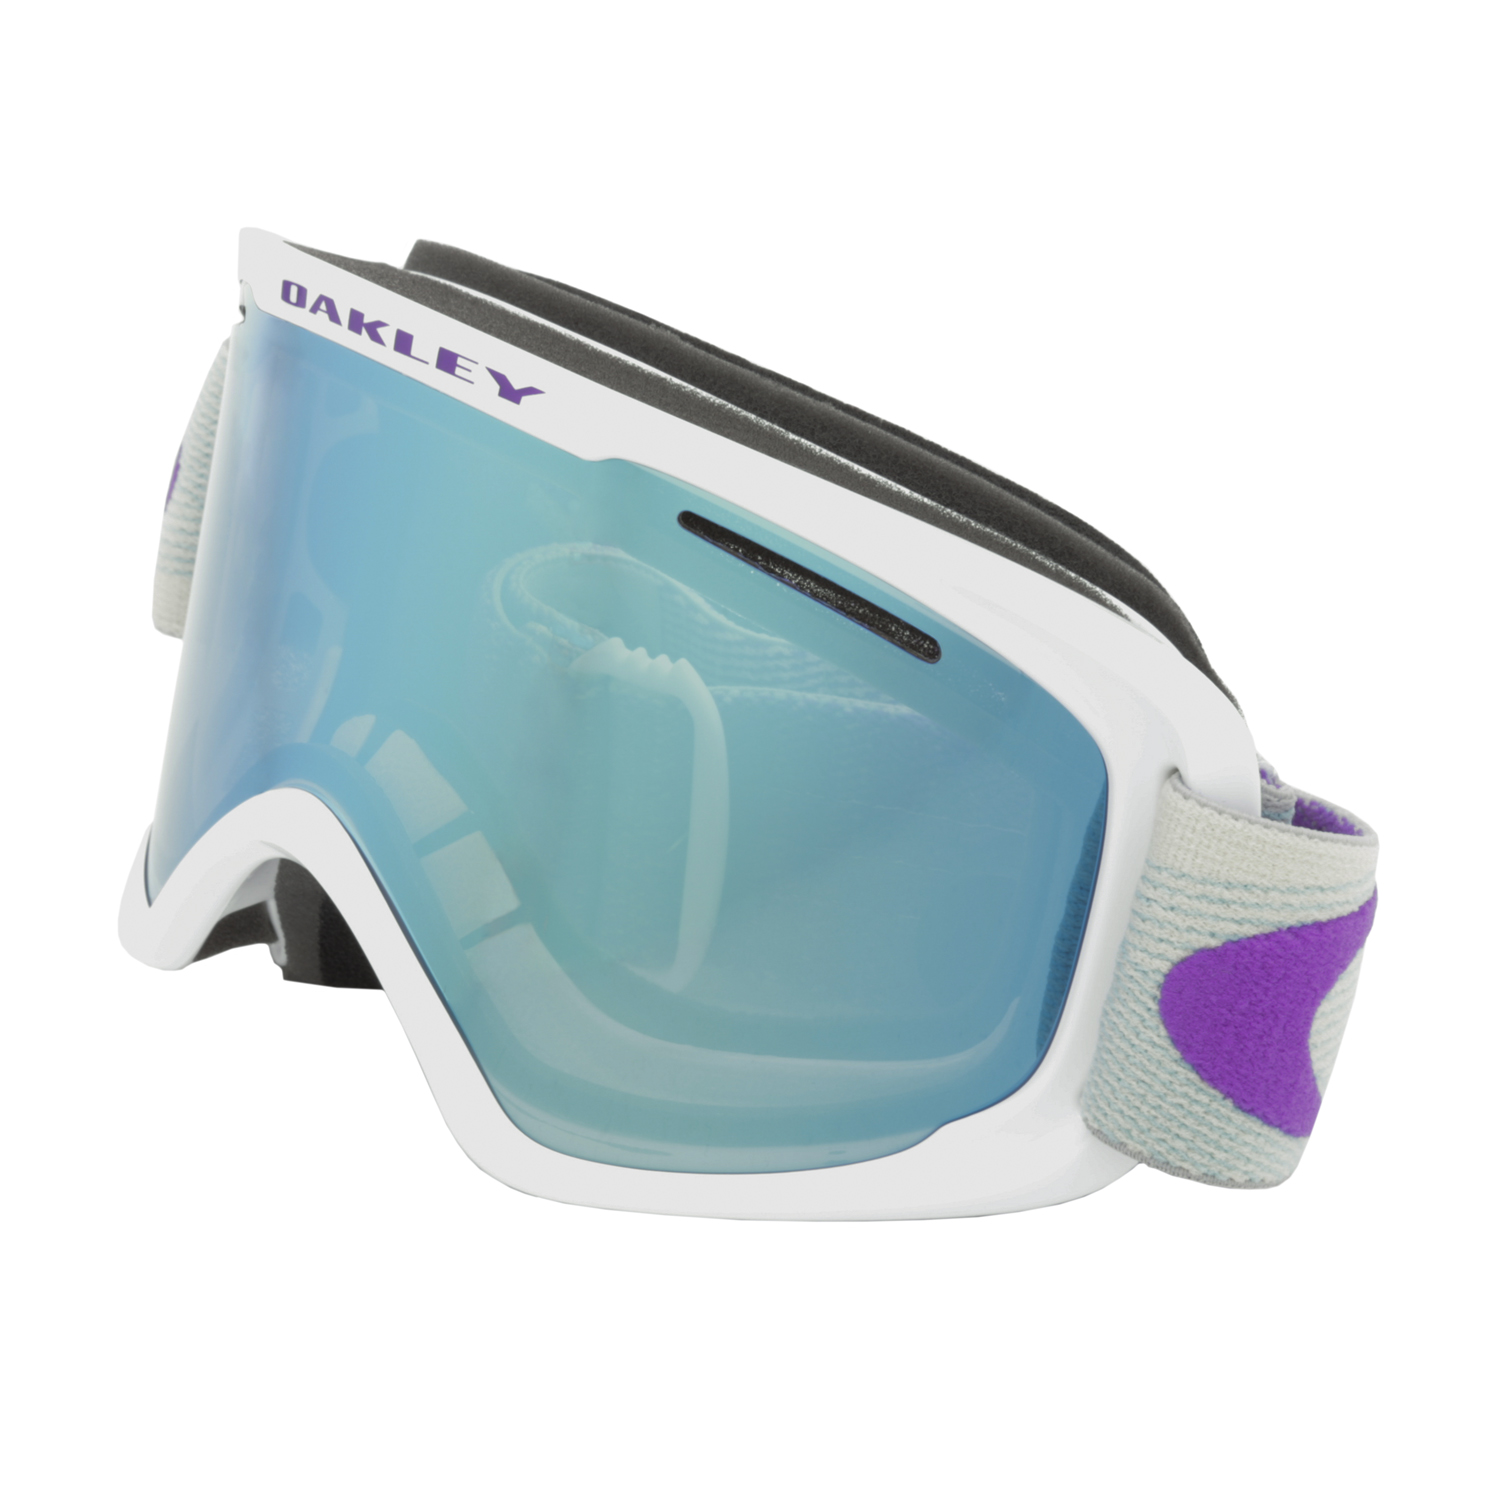 cfa502e0cd Details about Oakley O Frame 2.0 XM Snow Goggles OO7066-39 Abstract Lines  Purple Blue   Violet